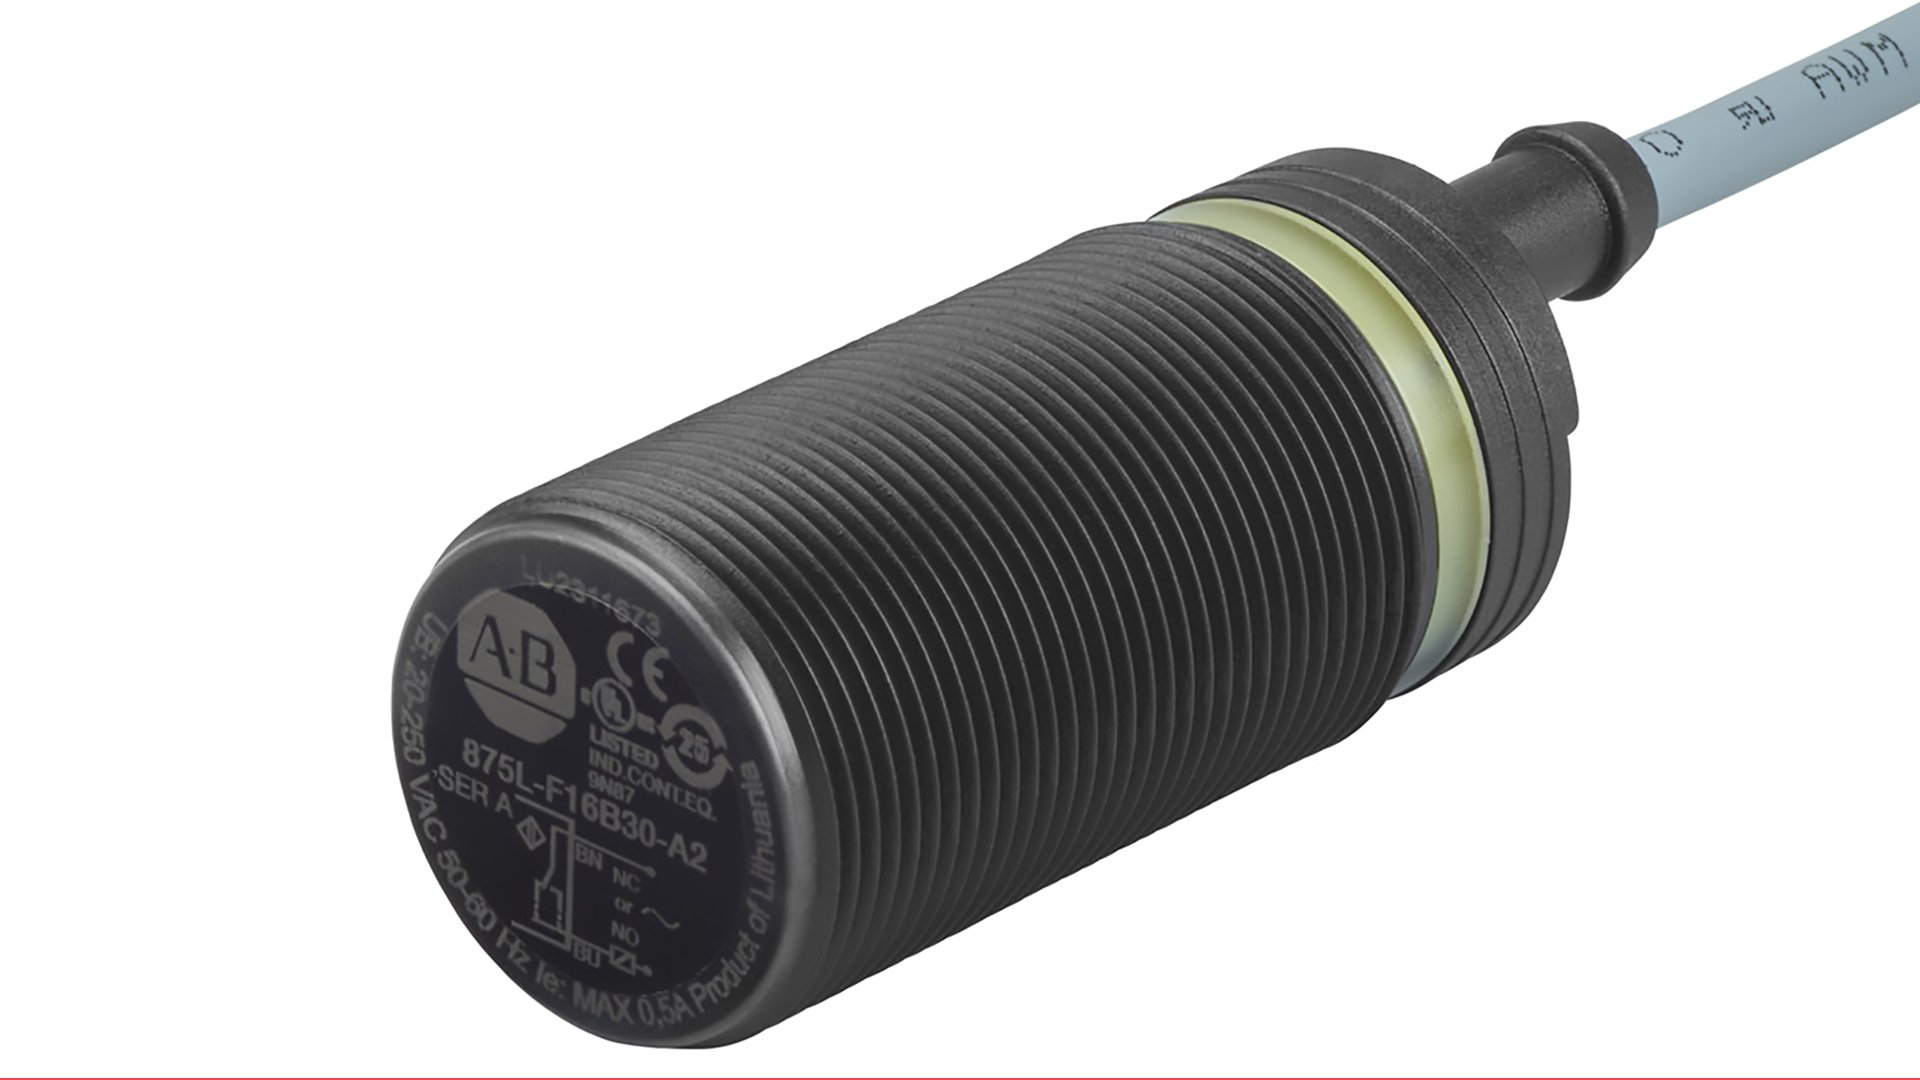 Black Cylindrical Capacitive Sensor with 30 mm Barrel Diameter, 2 m PVC Cable